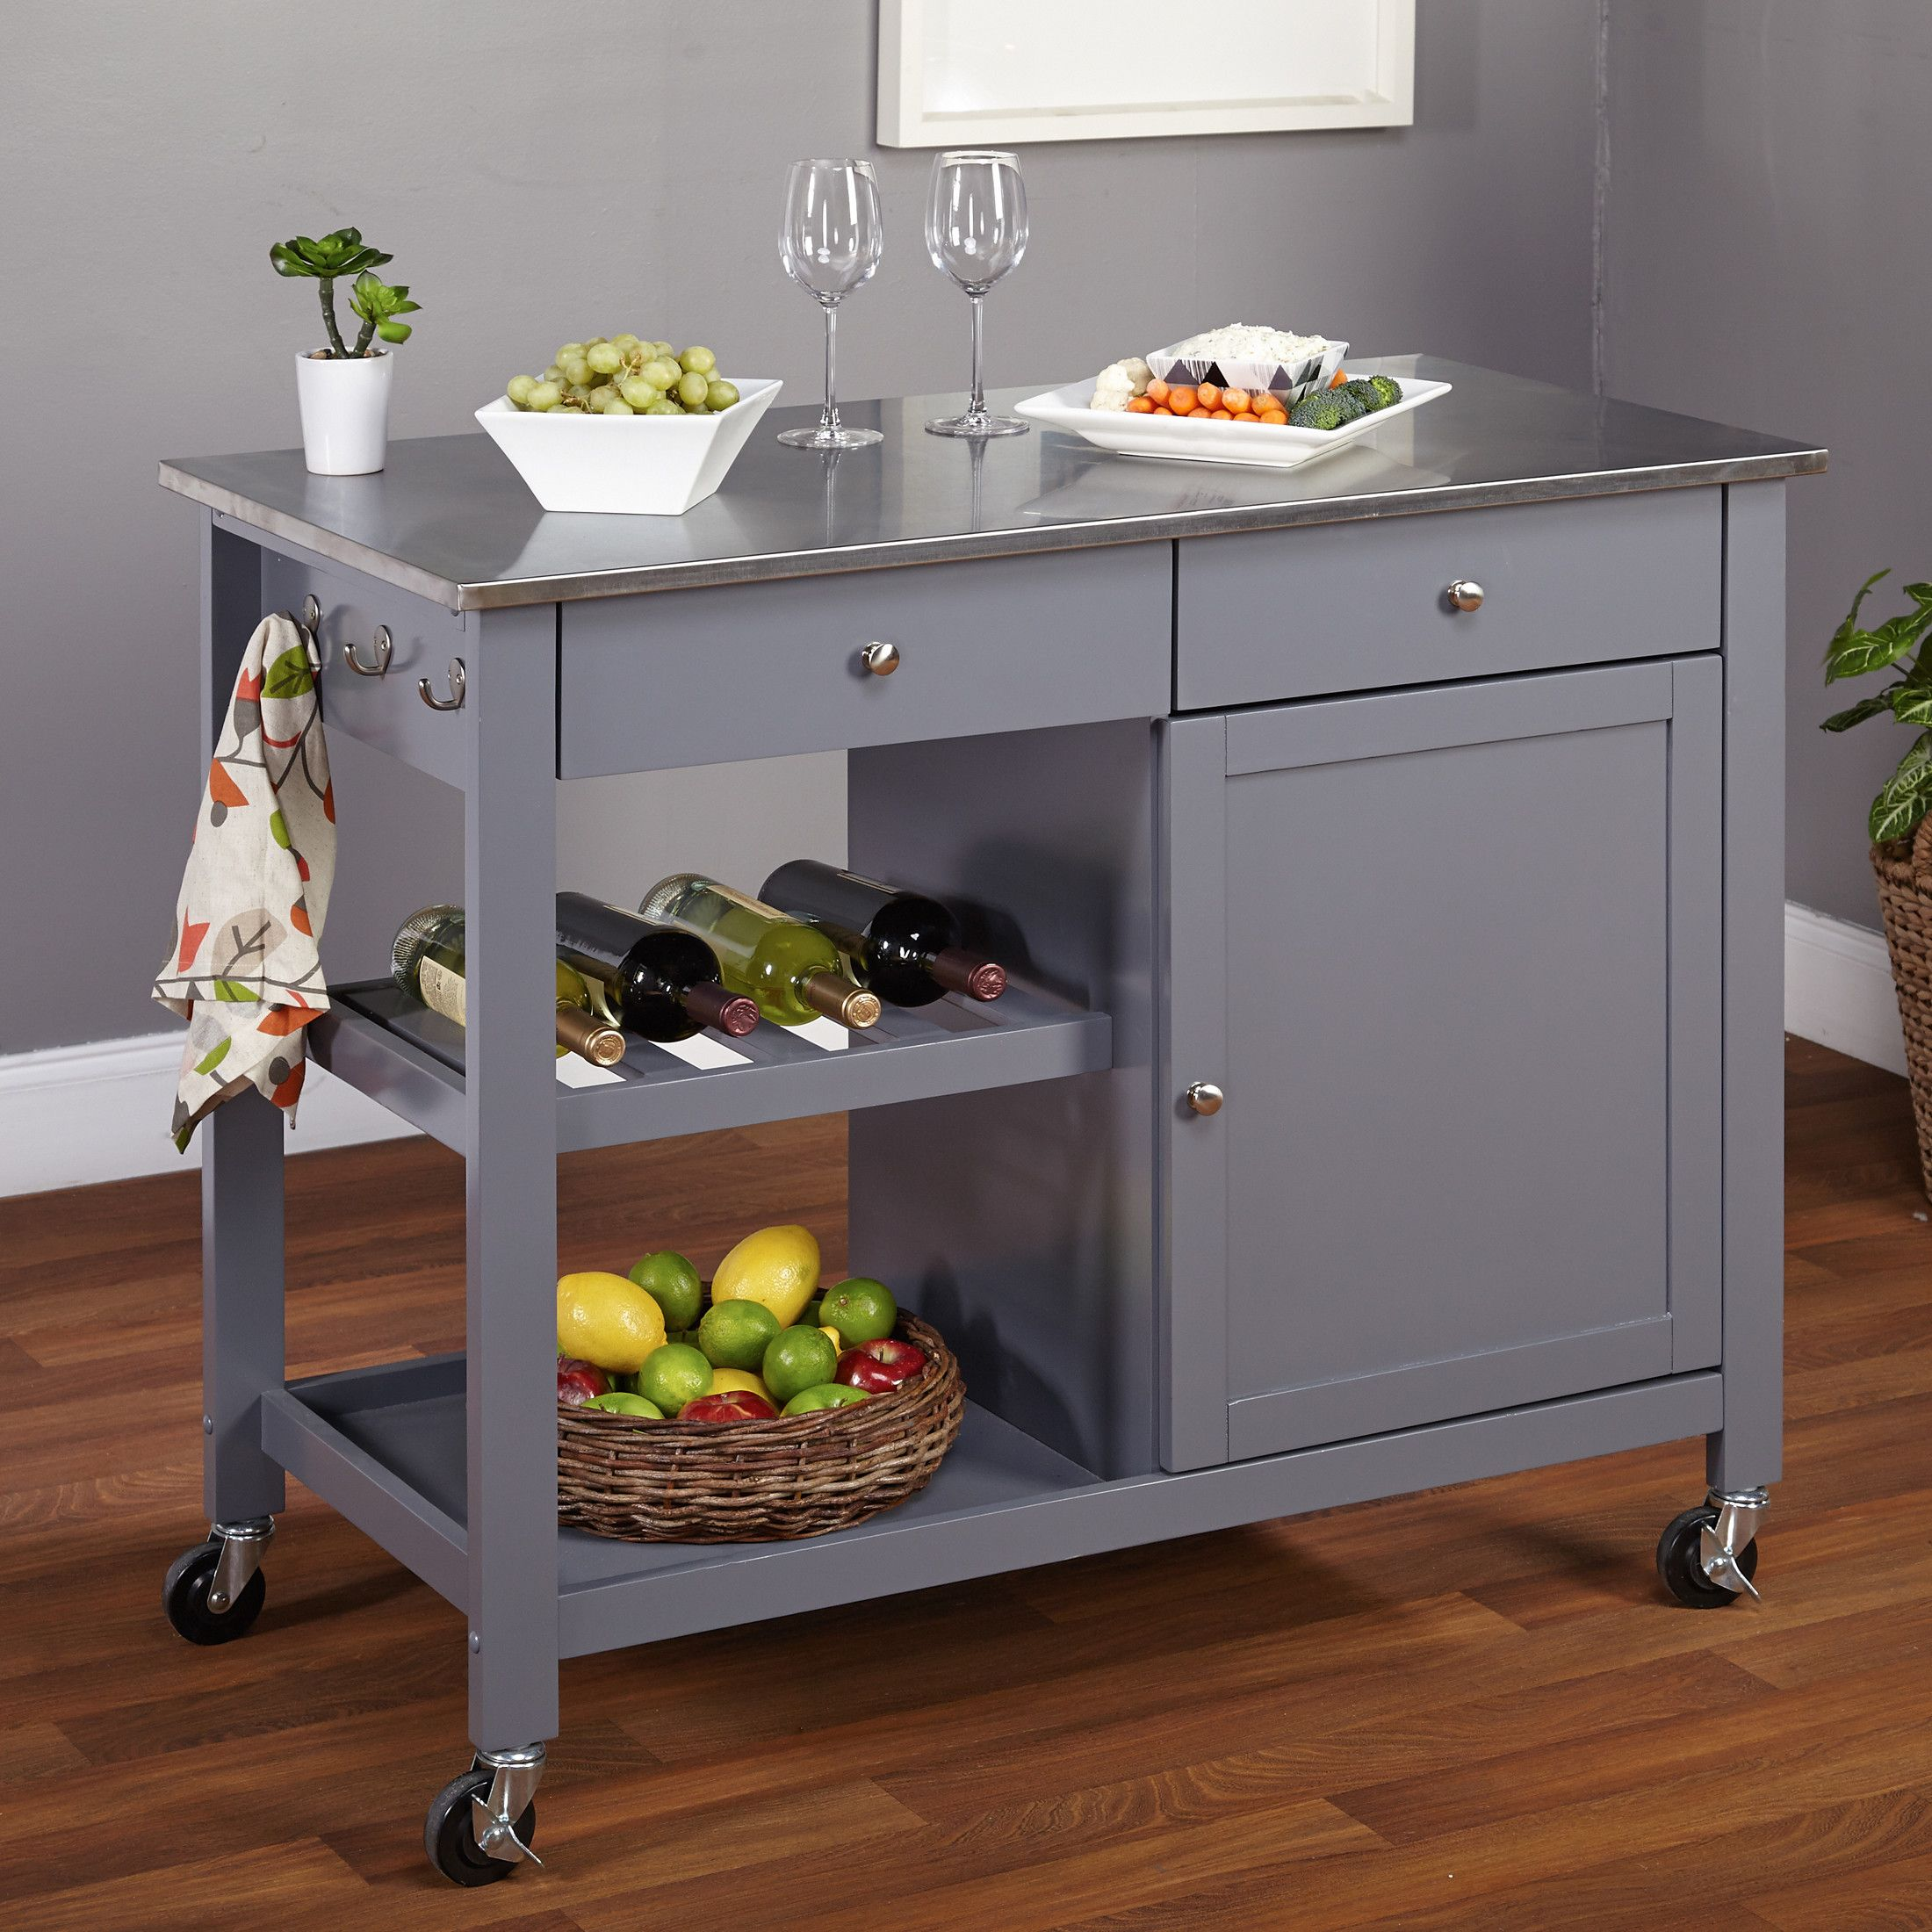 Tms Columbus Kitchen Island With Stainless Steel Top Kitchen